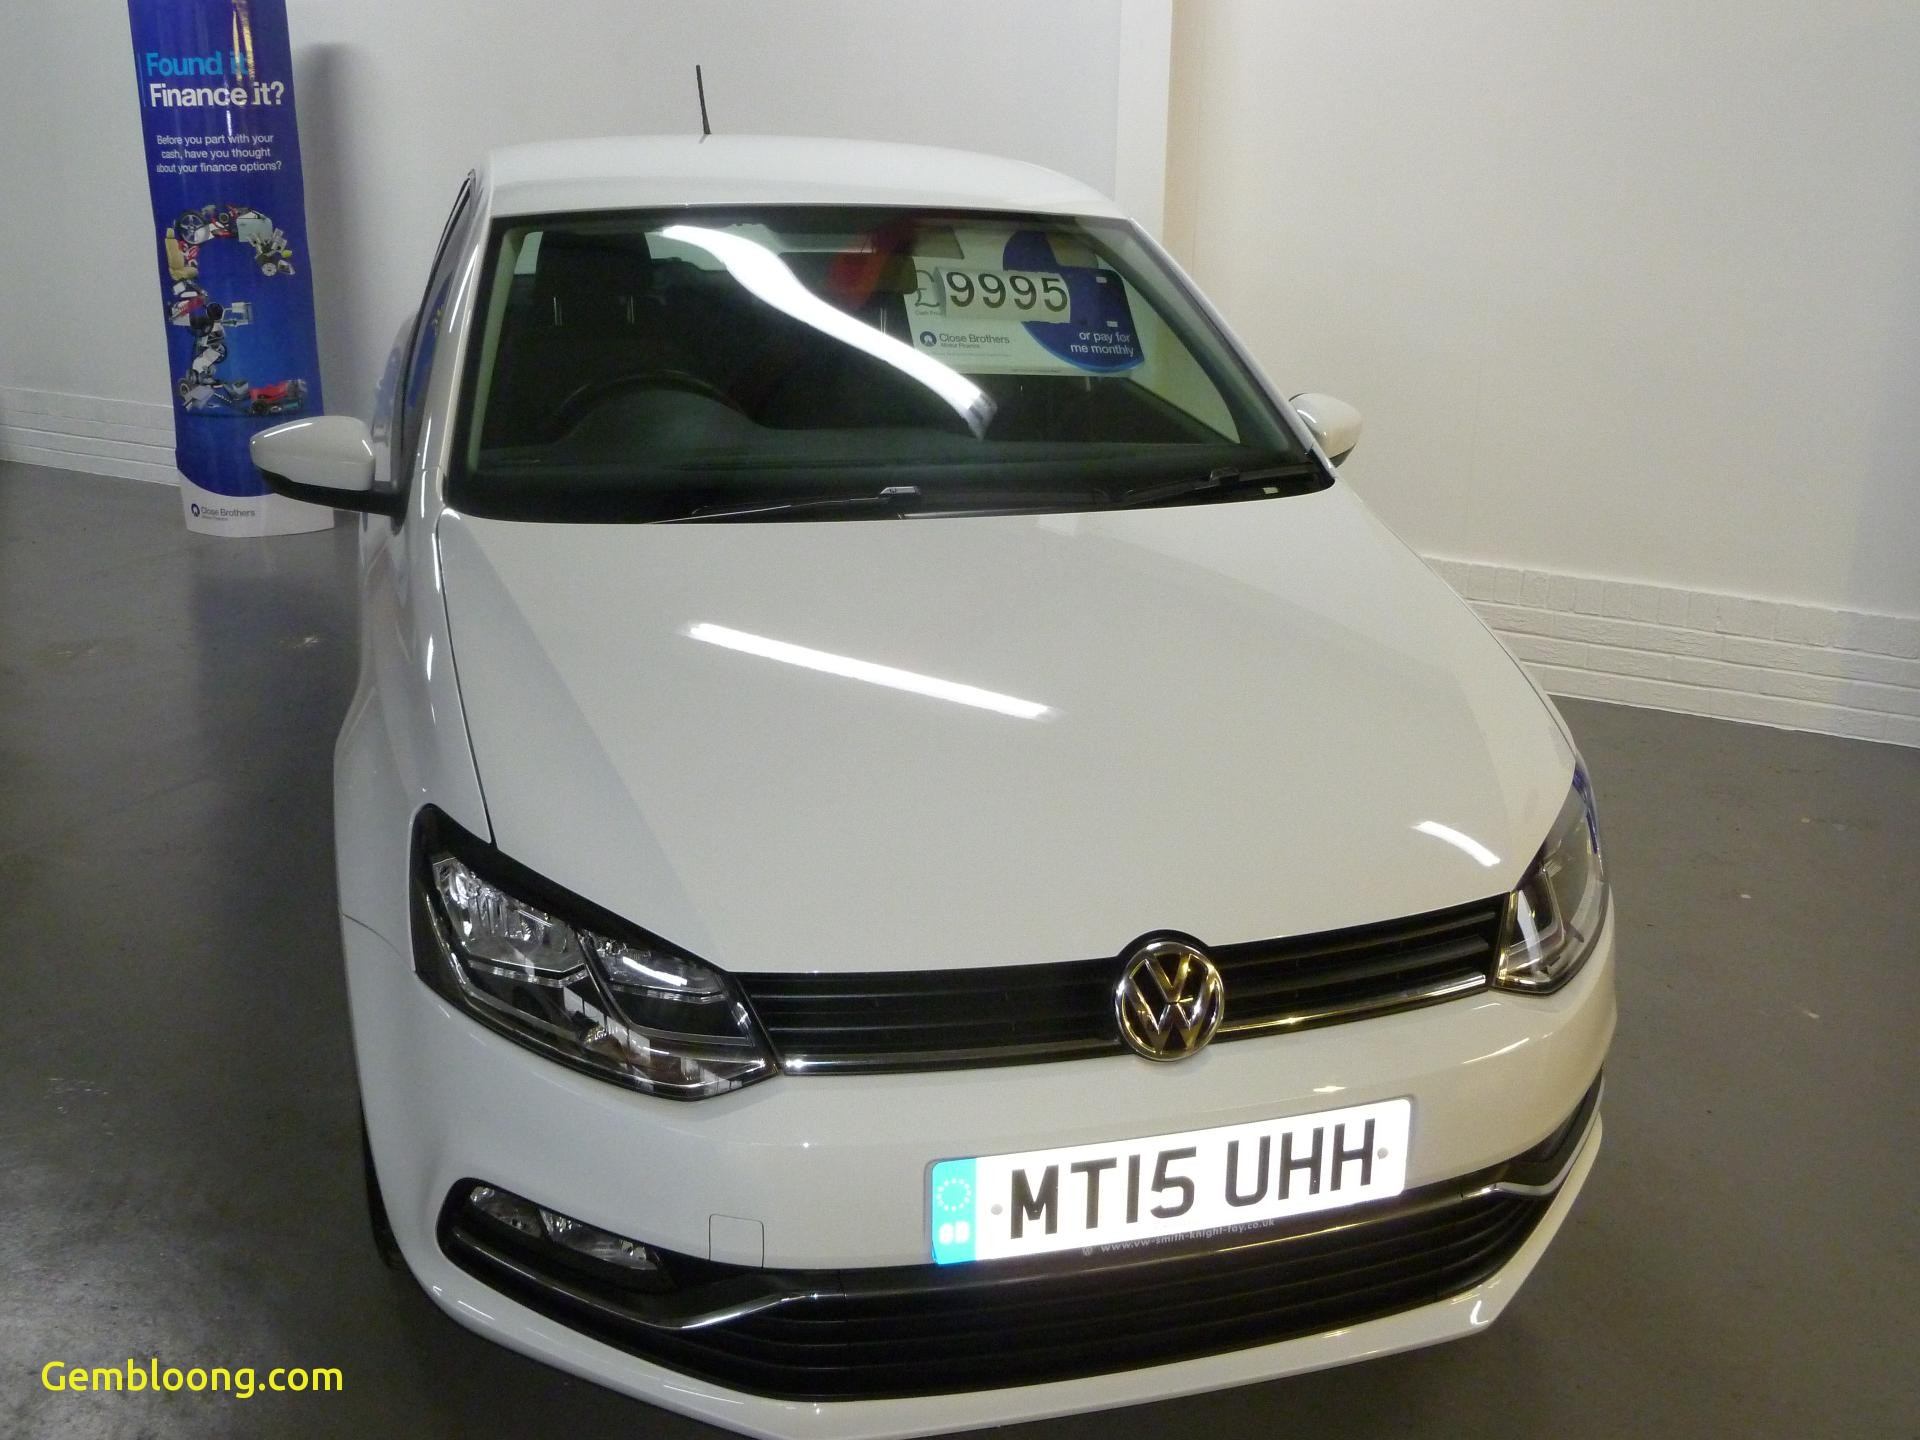 2014 cars for sale near me elegant used volkswagen cars for sale